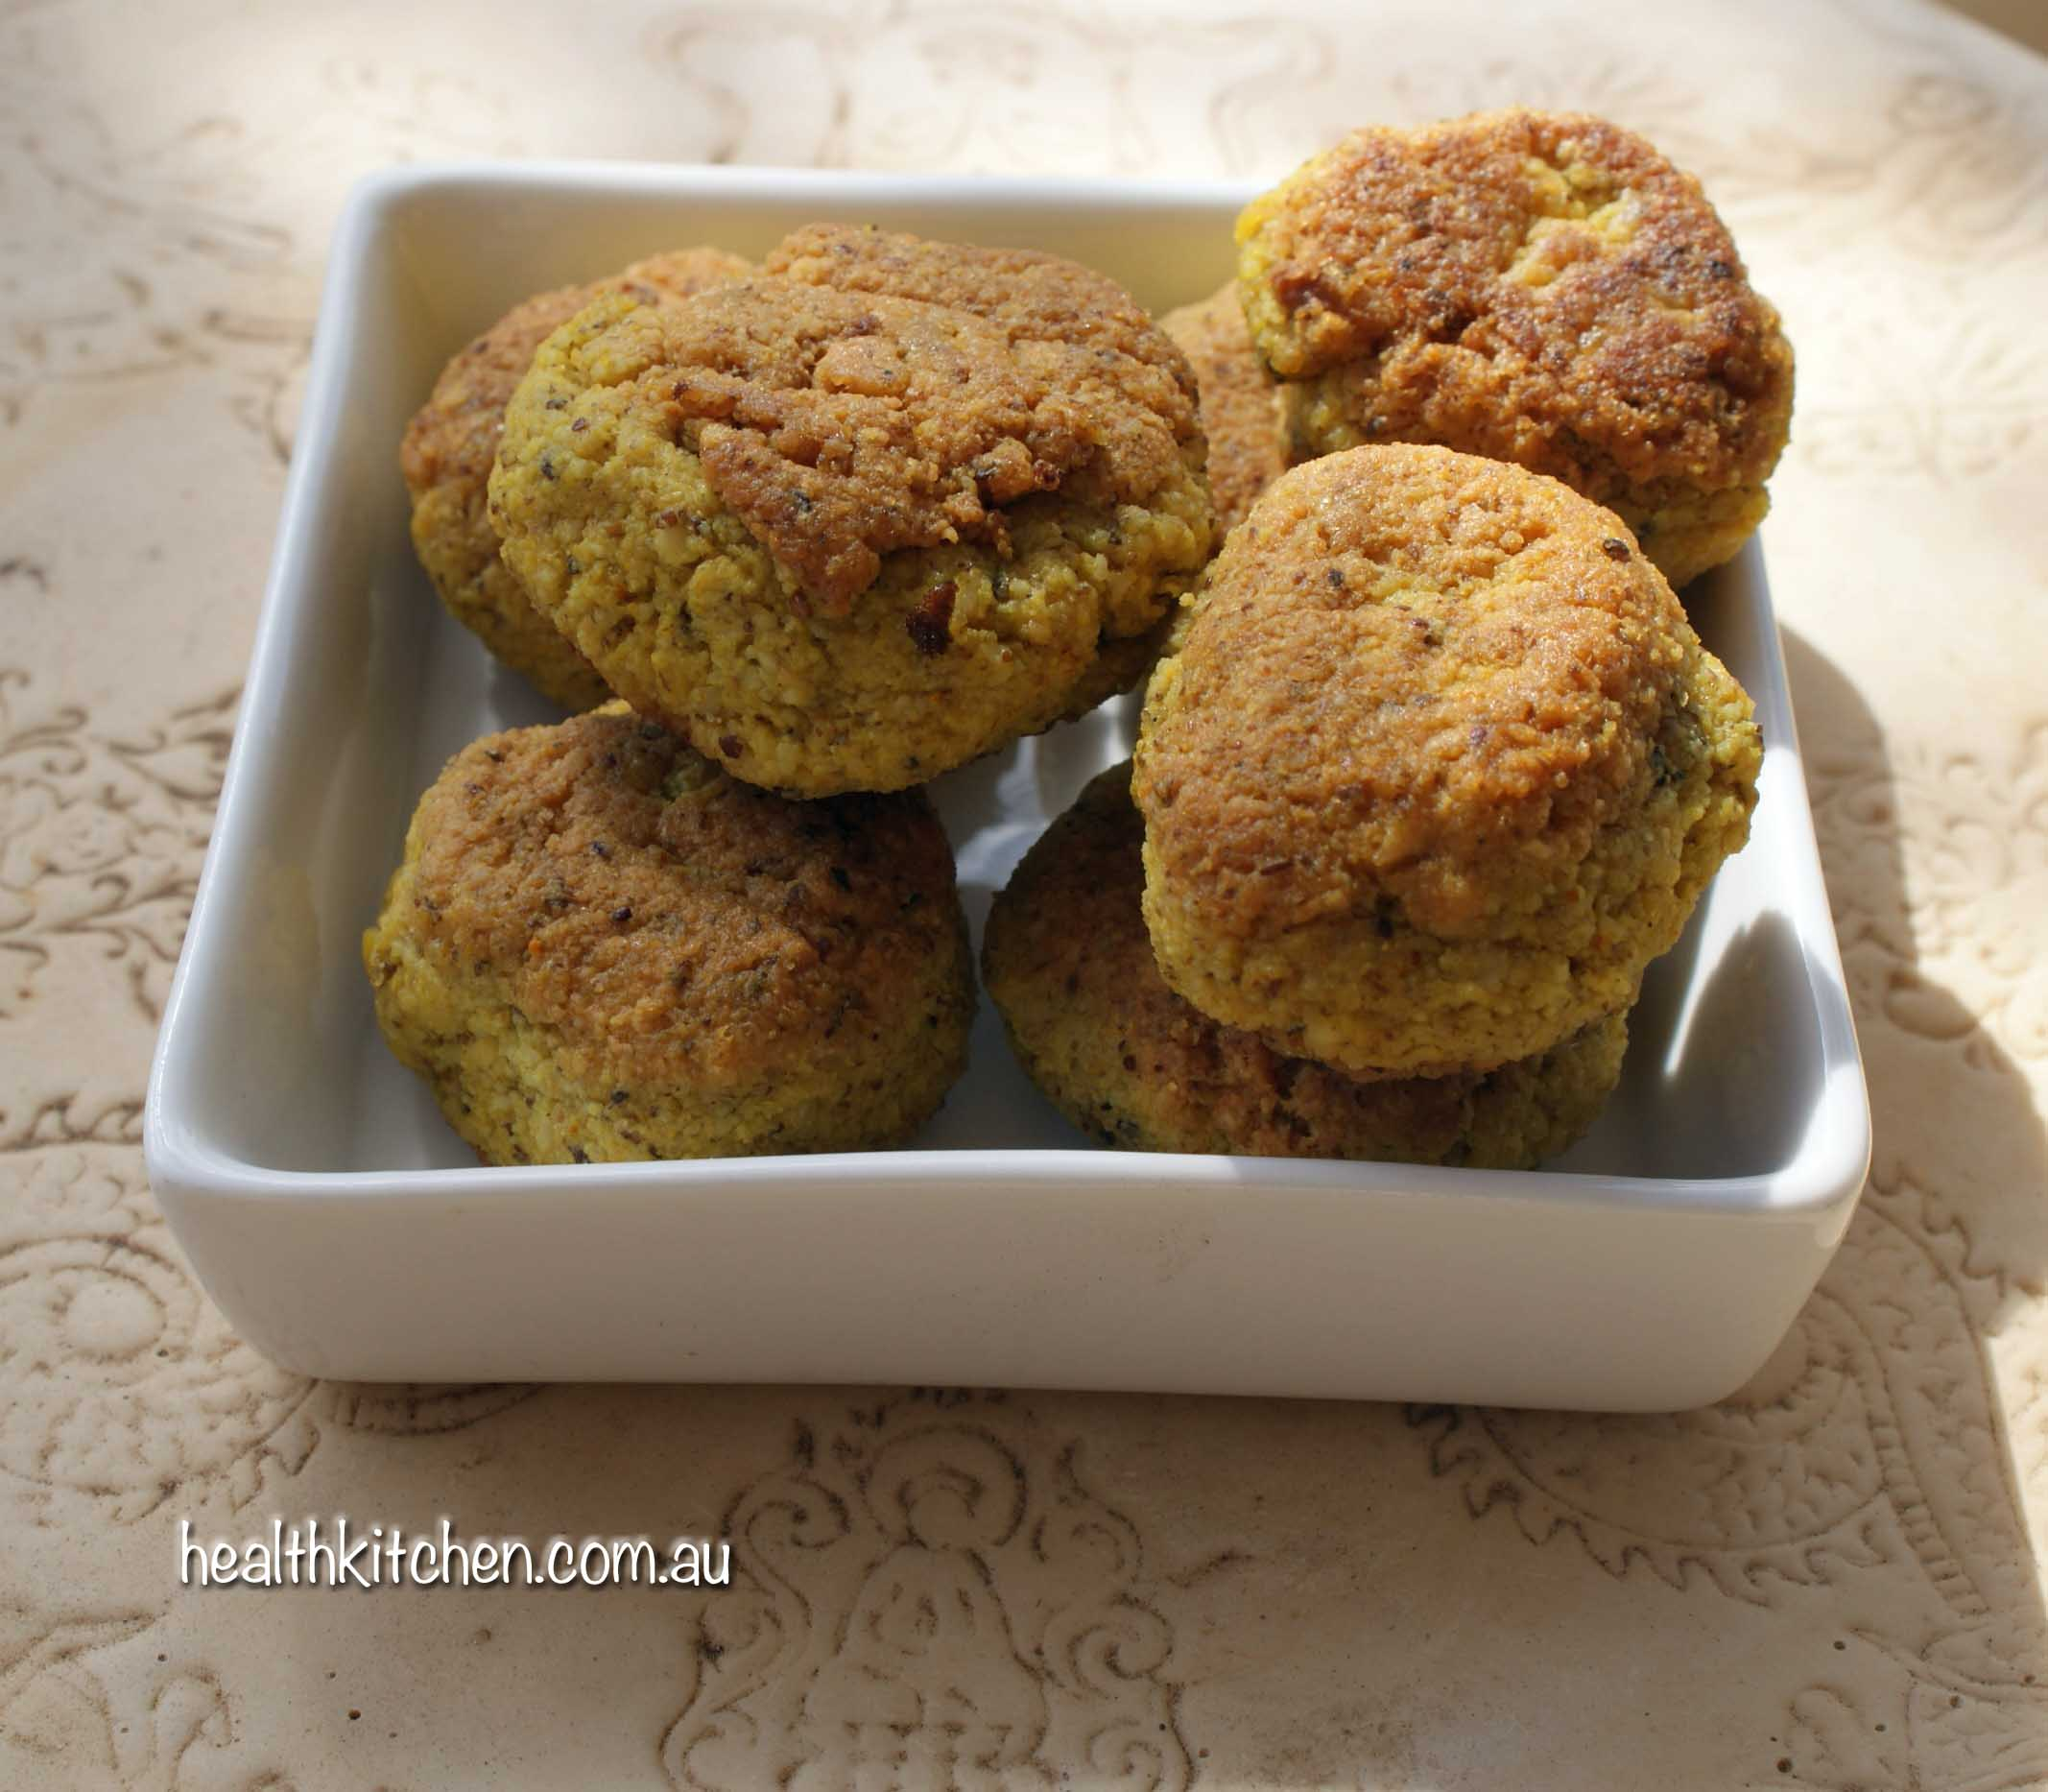 Spicy tofu balls are also great finger food at parties with sweet chilli dipping sauce.